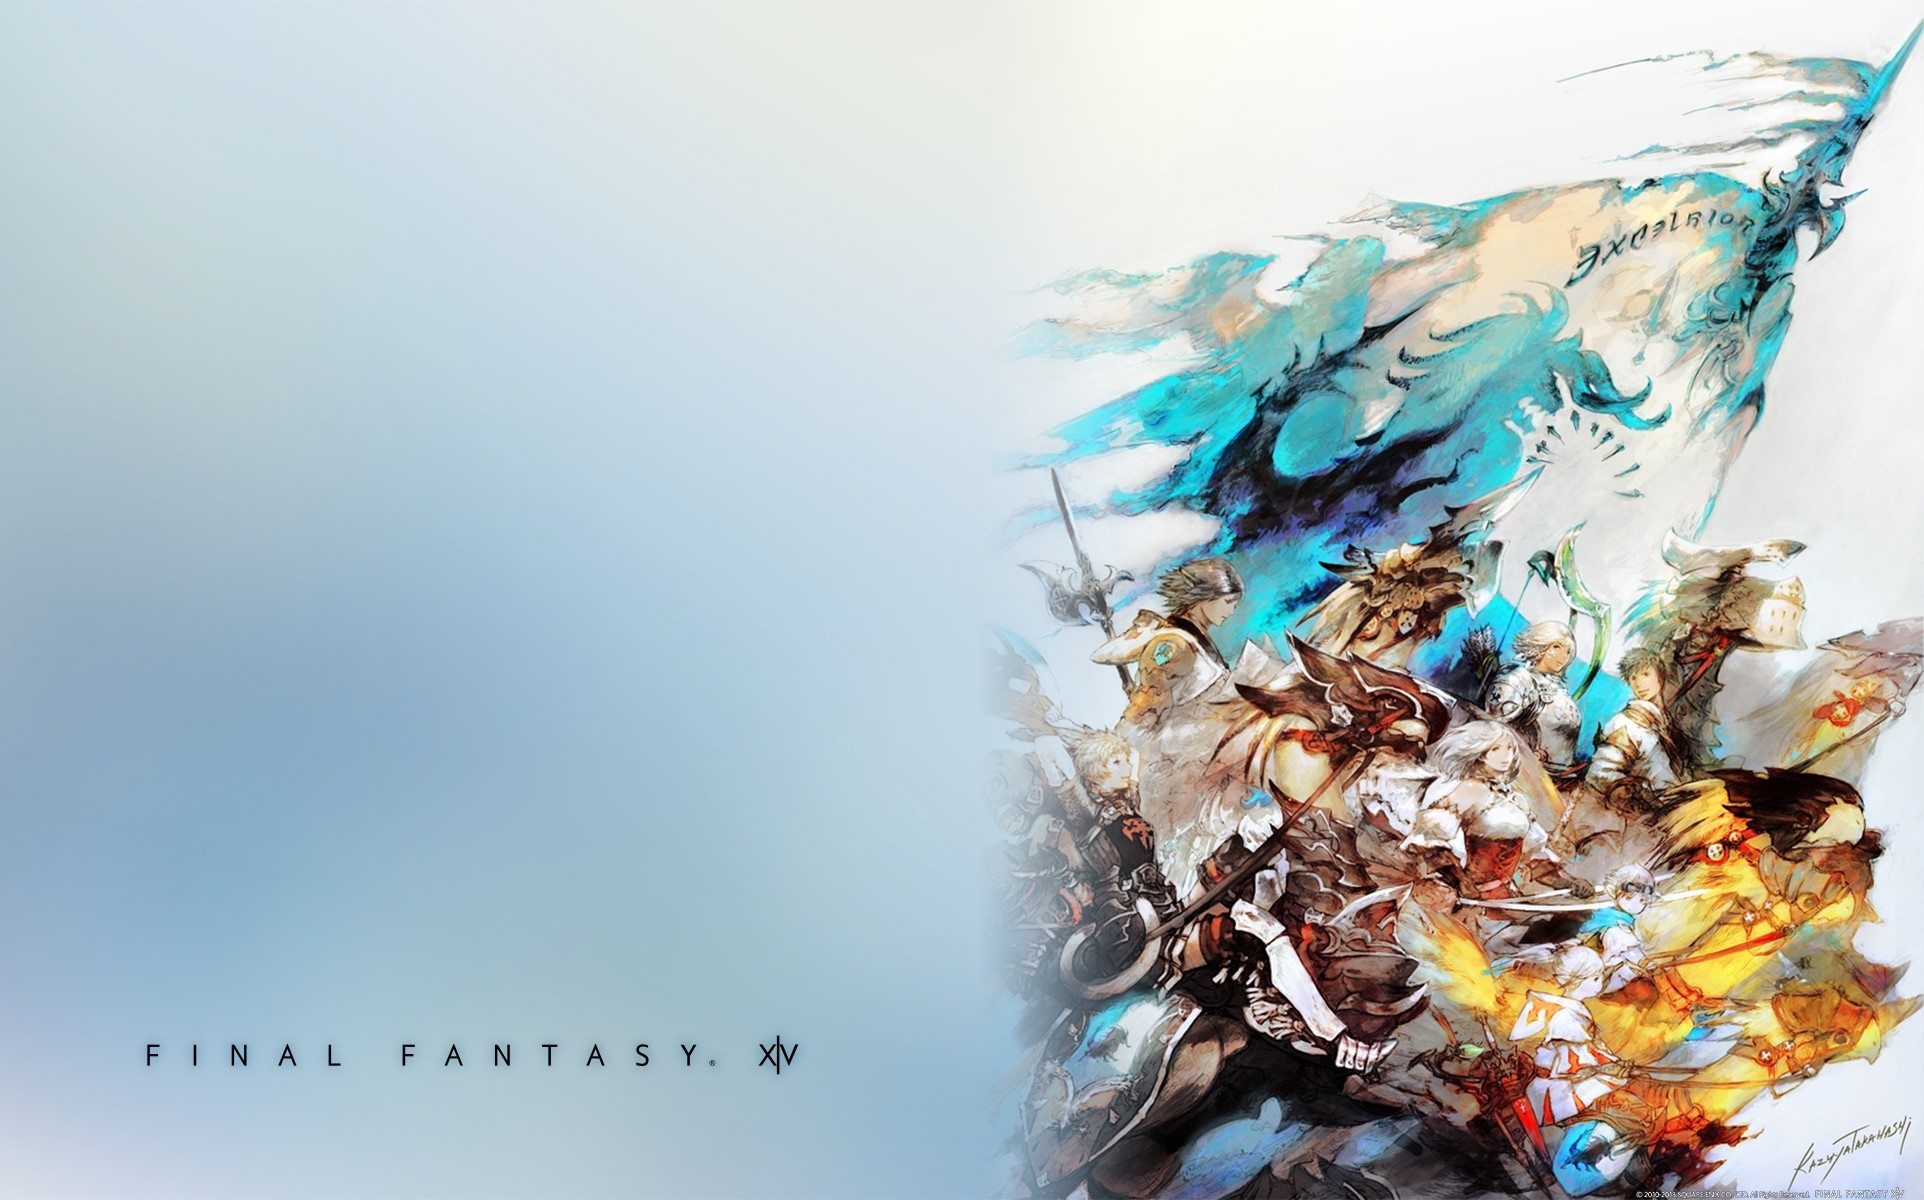 Final Fantasy Xv Wallpapers, Pictures, Images regarding Final Fantasy 15  Wallpaper